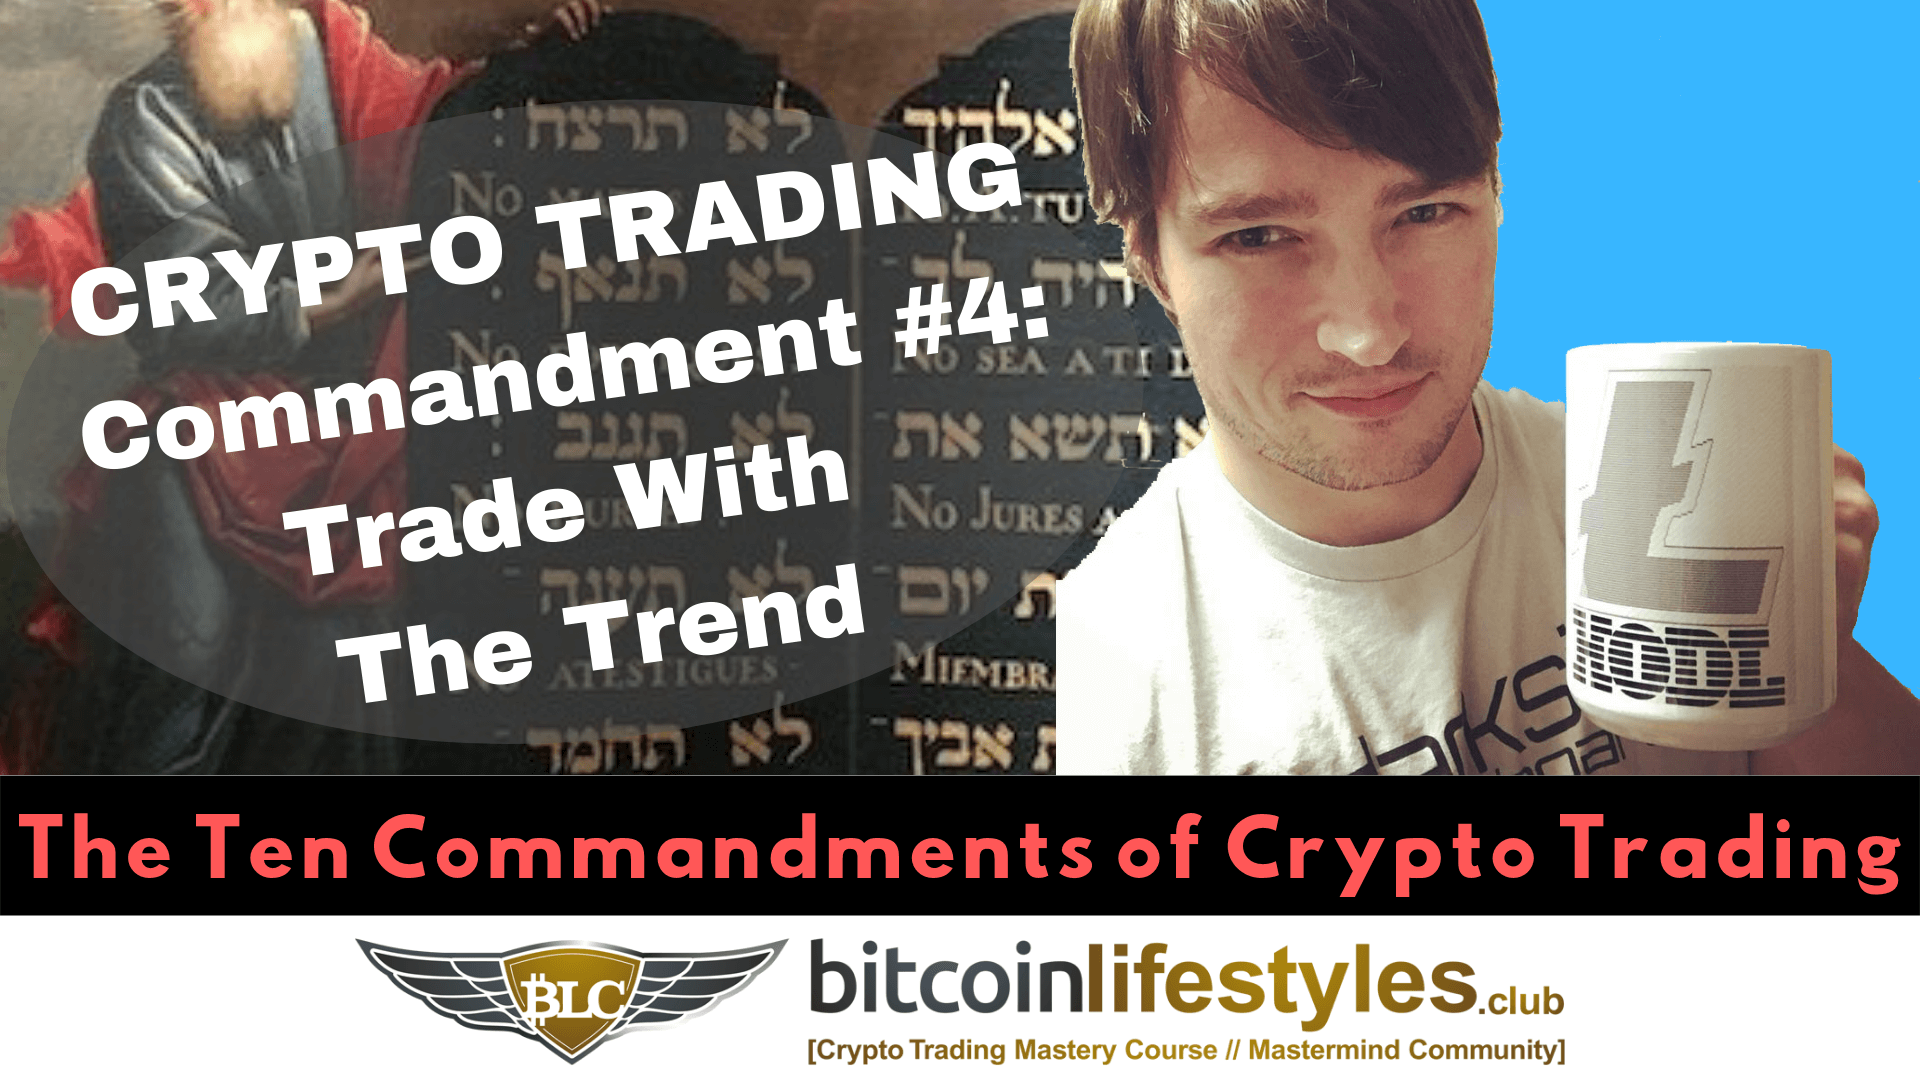 4th Crypto Trading Commandment: Thou Shalt Not Trade Against The Trend